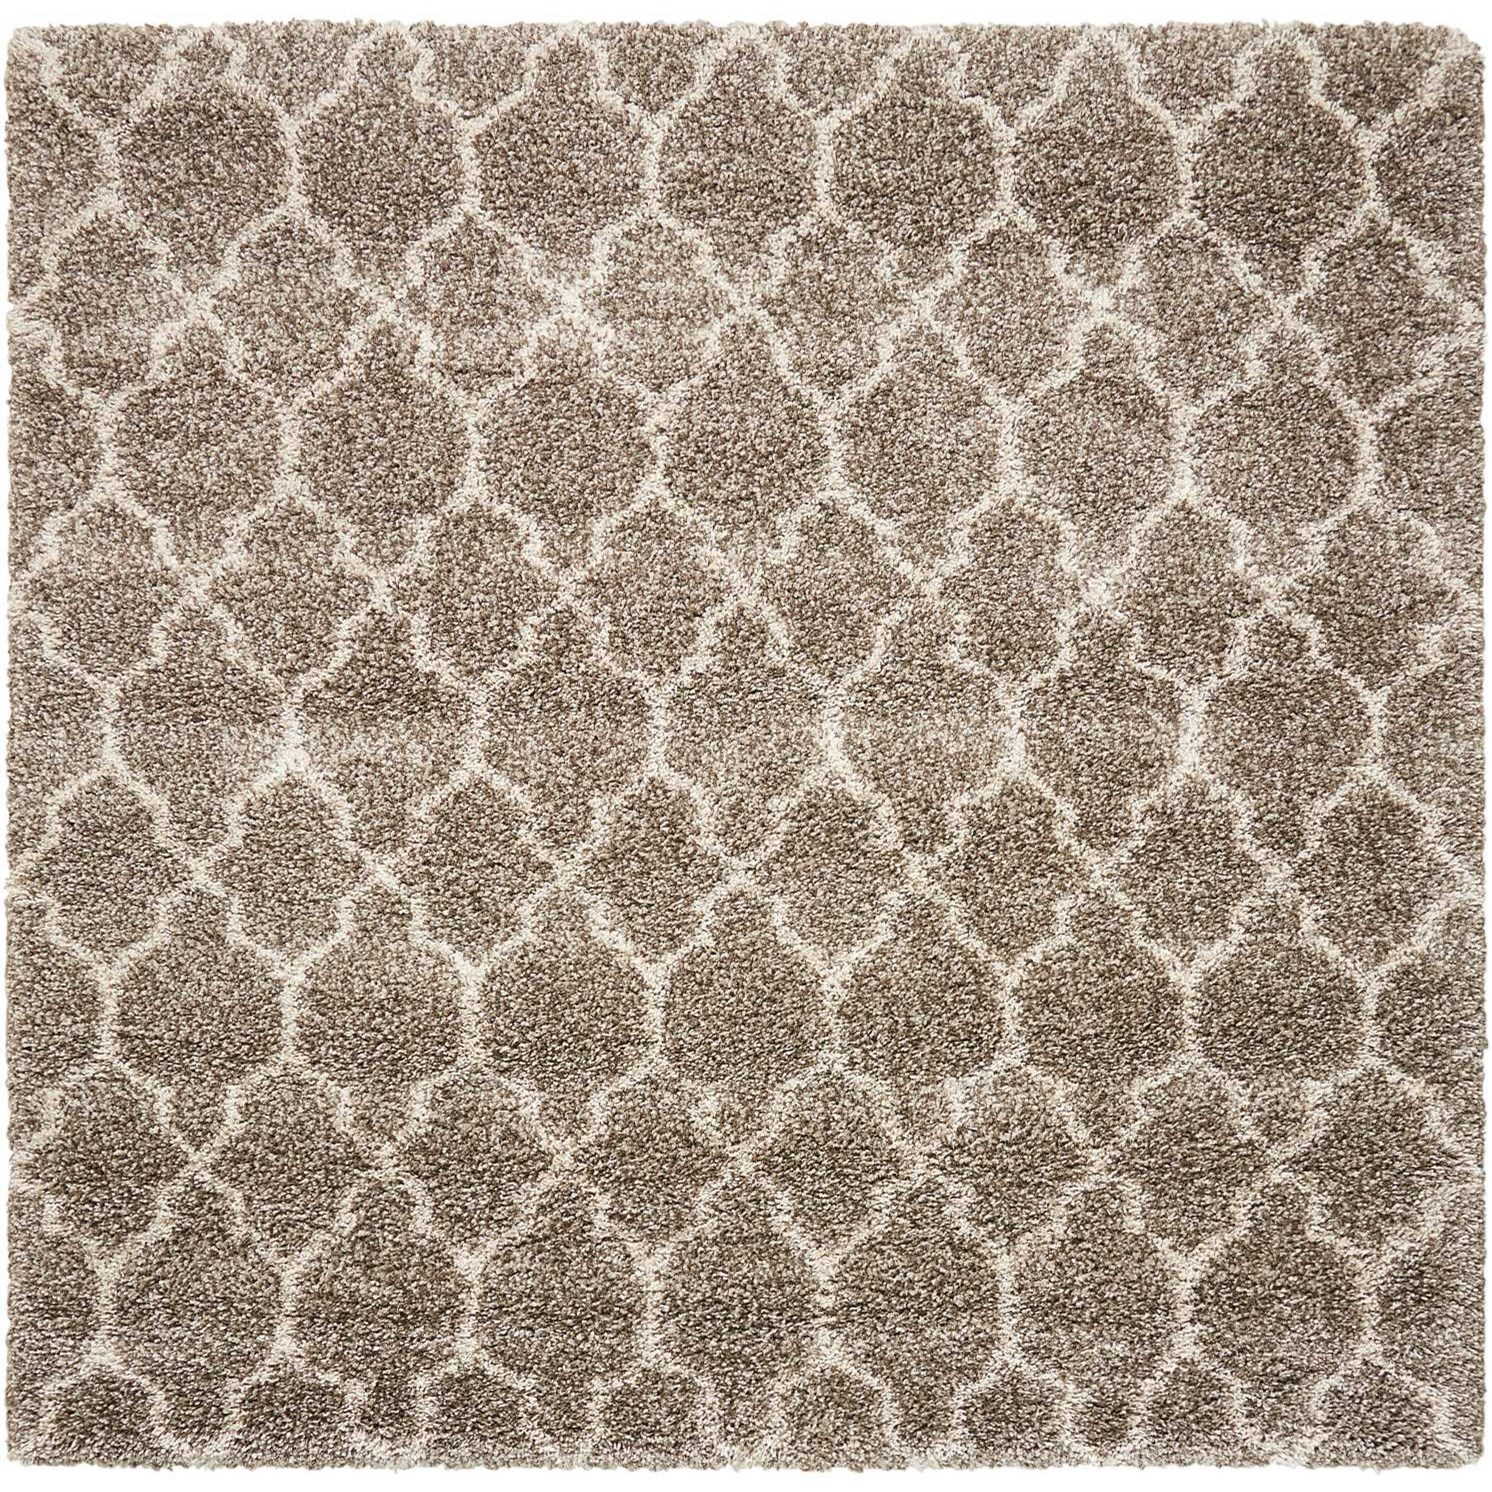 """Amore 6'7"""" x 6'7"""" Stone Rectangle Rug by Nourison at Home Collections Furniture"""